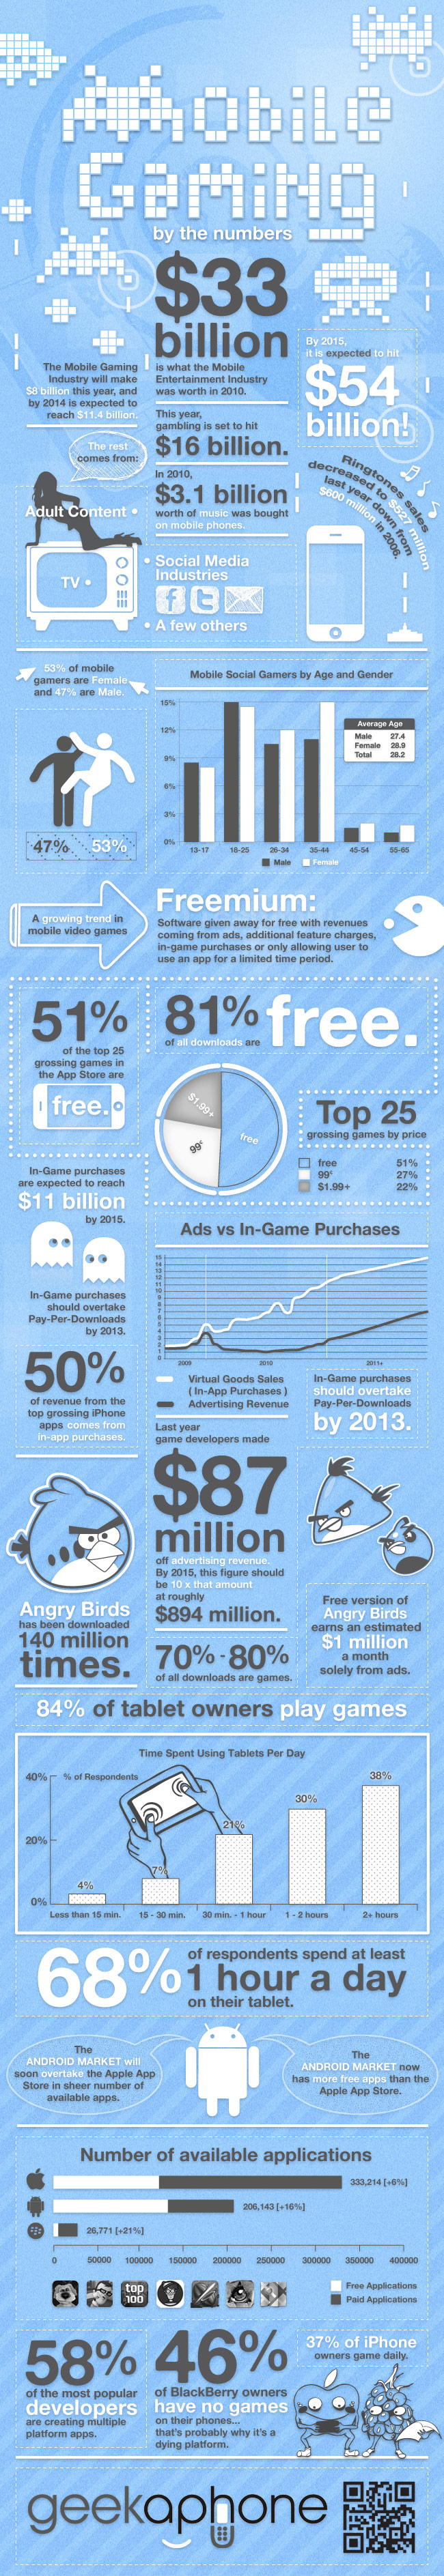 infographic-mobile-gaming